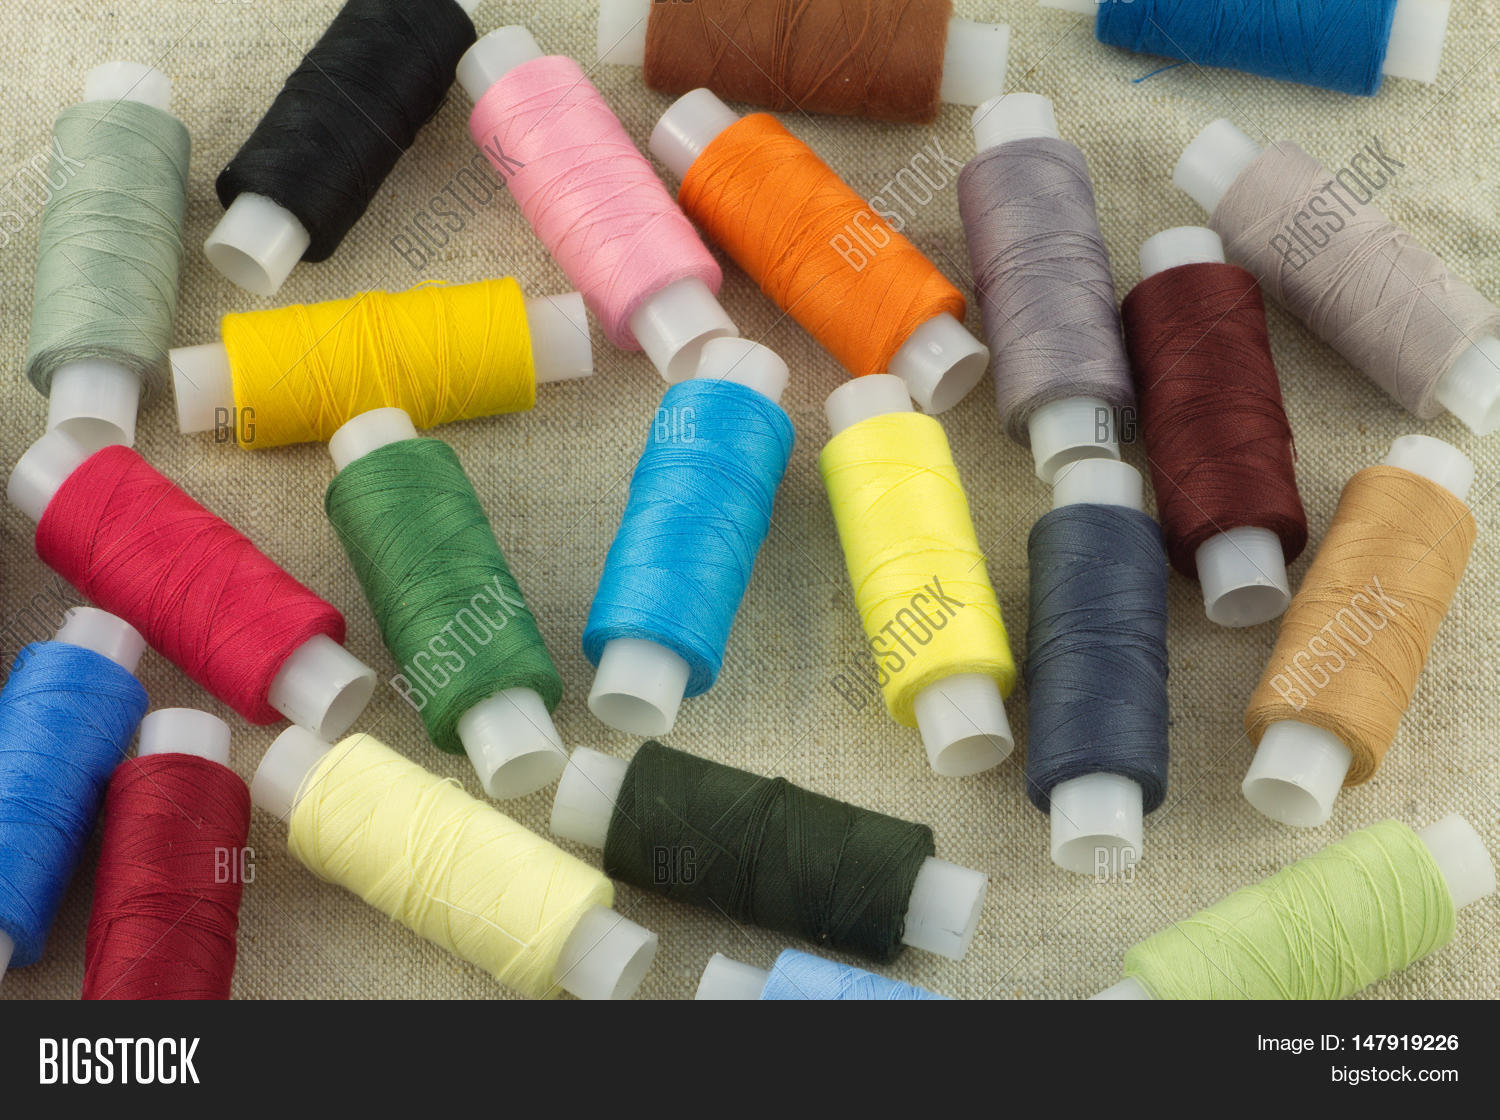 Thread Threads Spool Spools Object Objects Cloth Fabric Textile Woven Colored Color